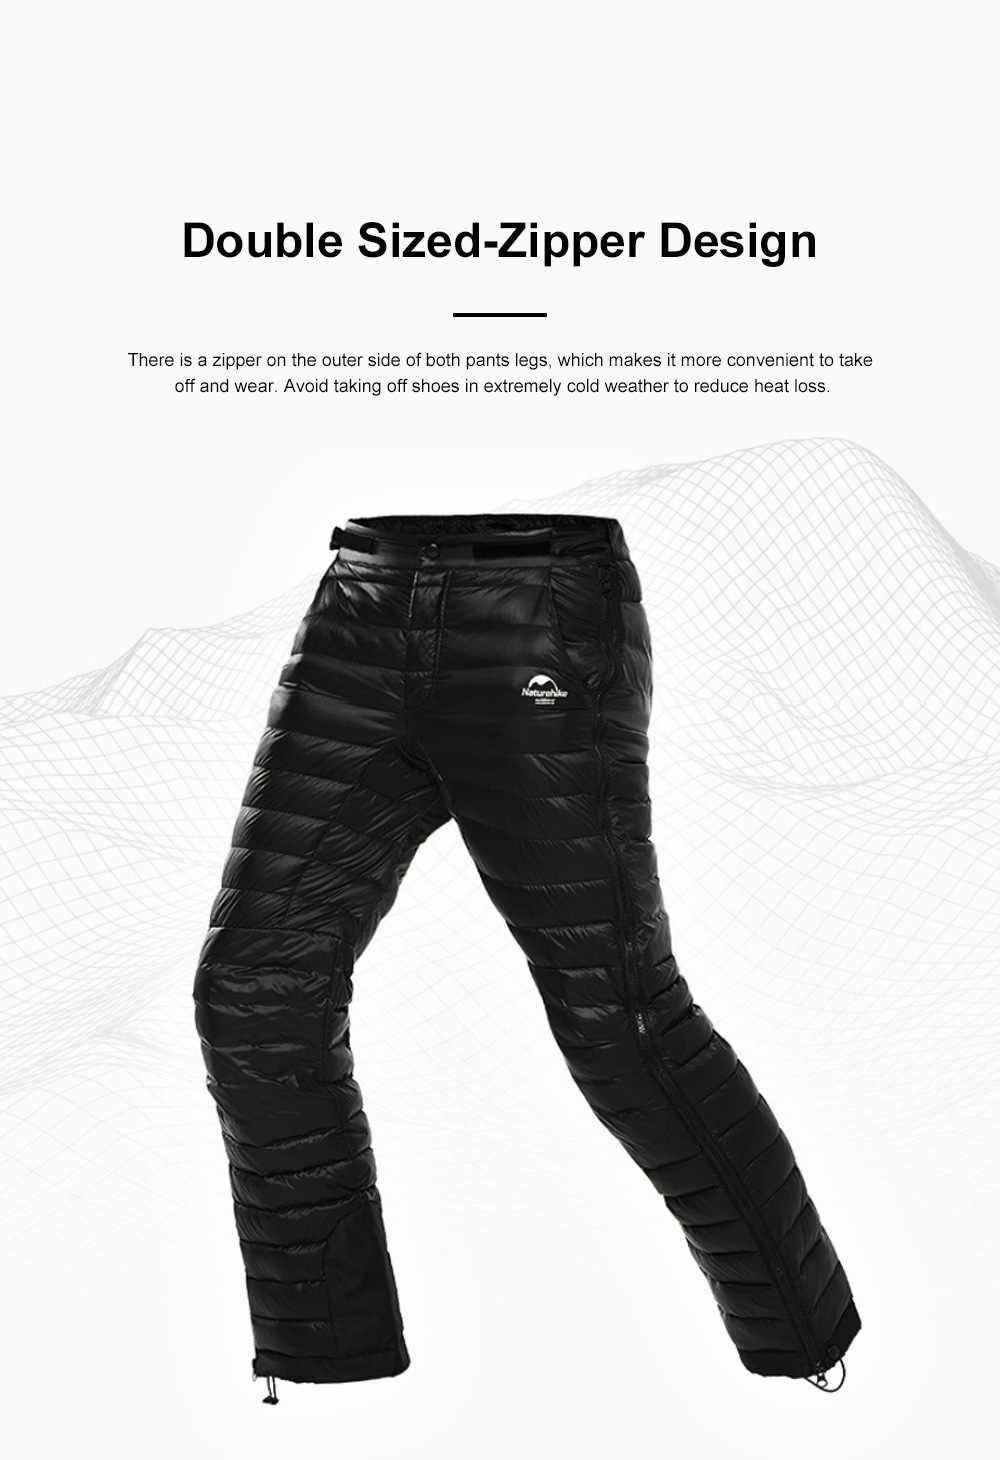 NH 95% Goose Down Pants Windproof and Water-Resistant Insulated Snow Trousers for Winter Outdoor Sport 1